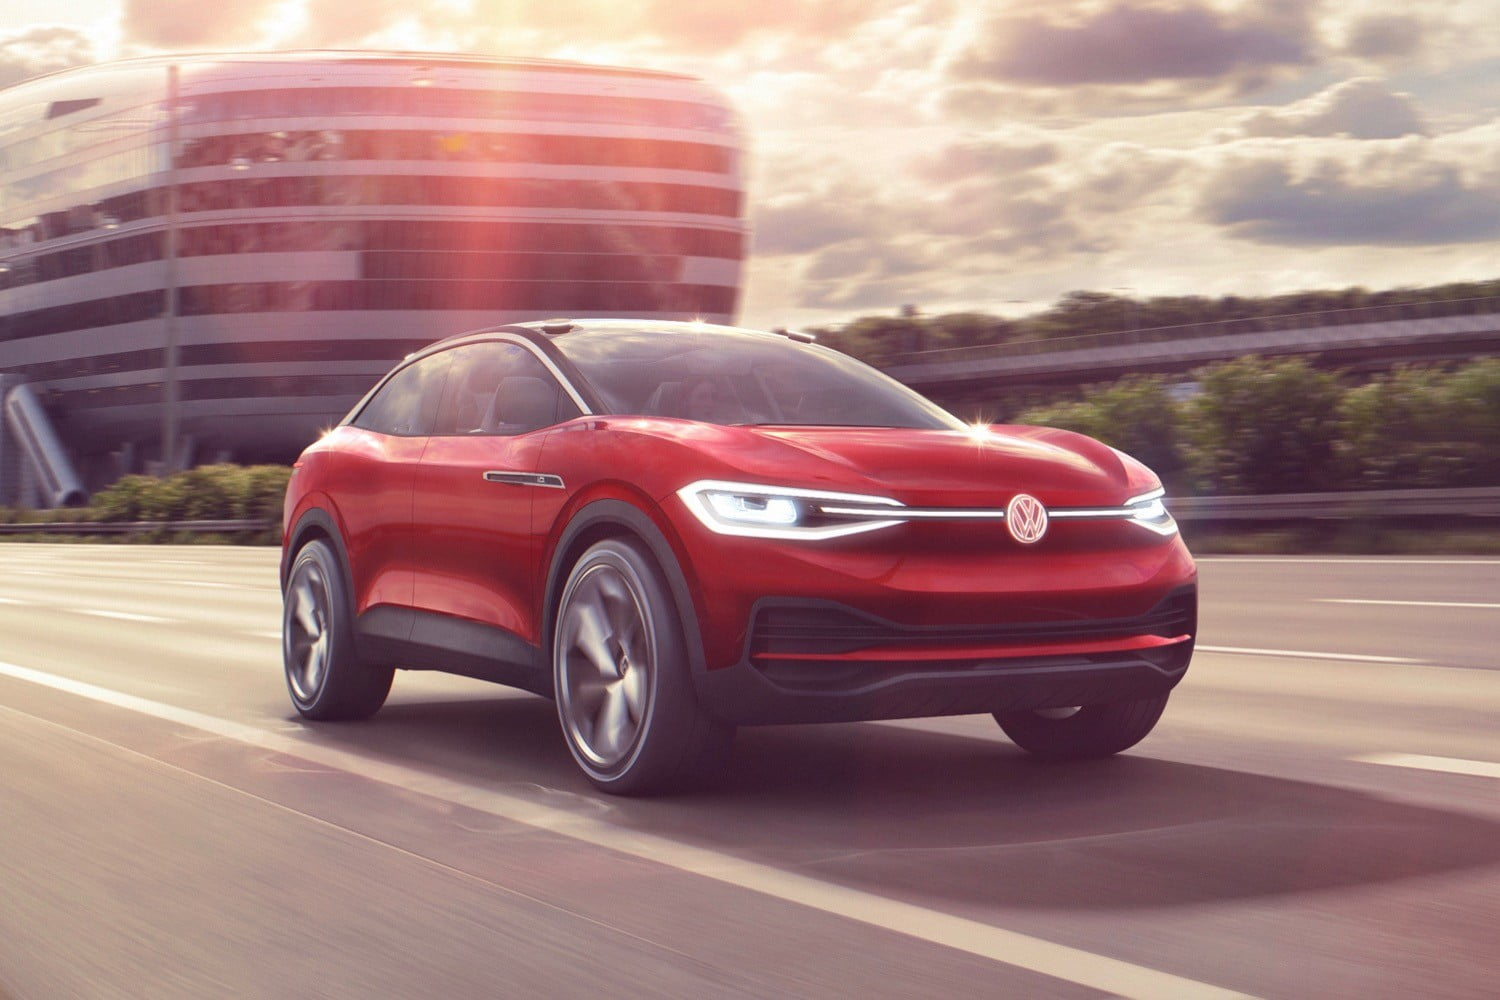 Volkswagen breaks ground on U.S. electric car factory, production starts in 2022